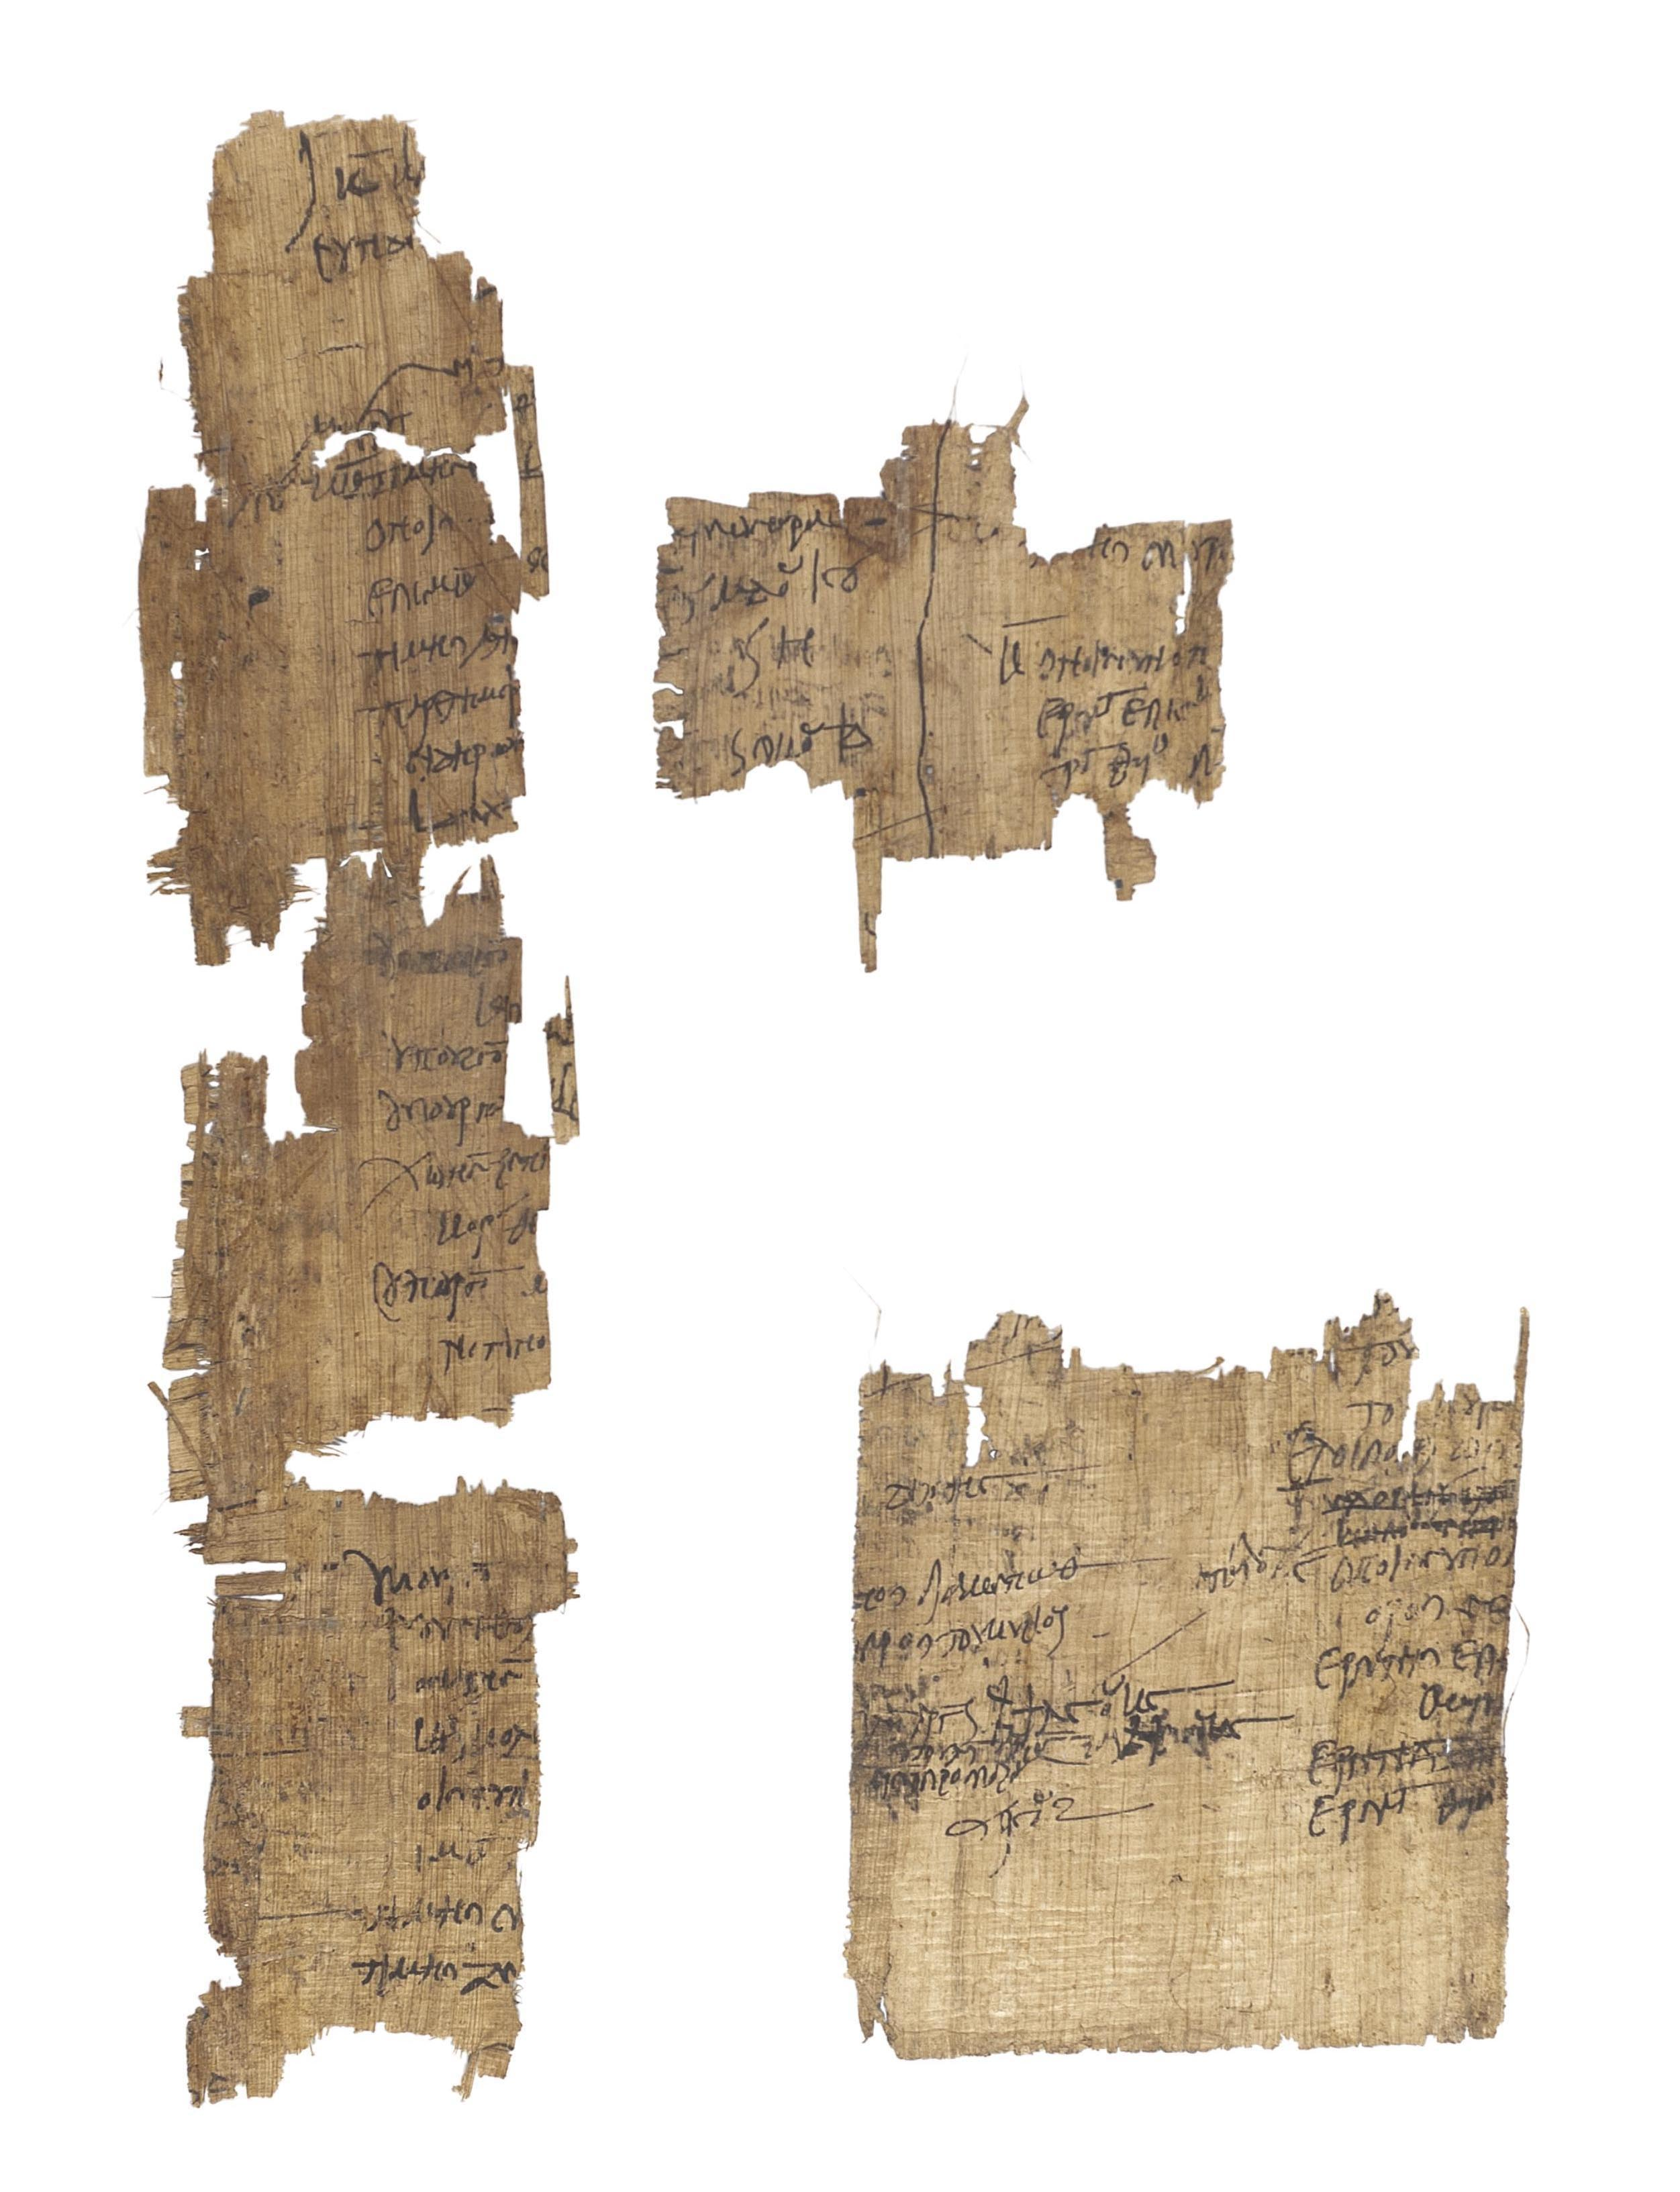 A COLLECTION OF GREEK AND COPTIC PAPYRI FRAGMENTS, [Egypt, 2nd to 4th century].